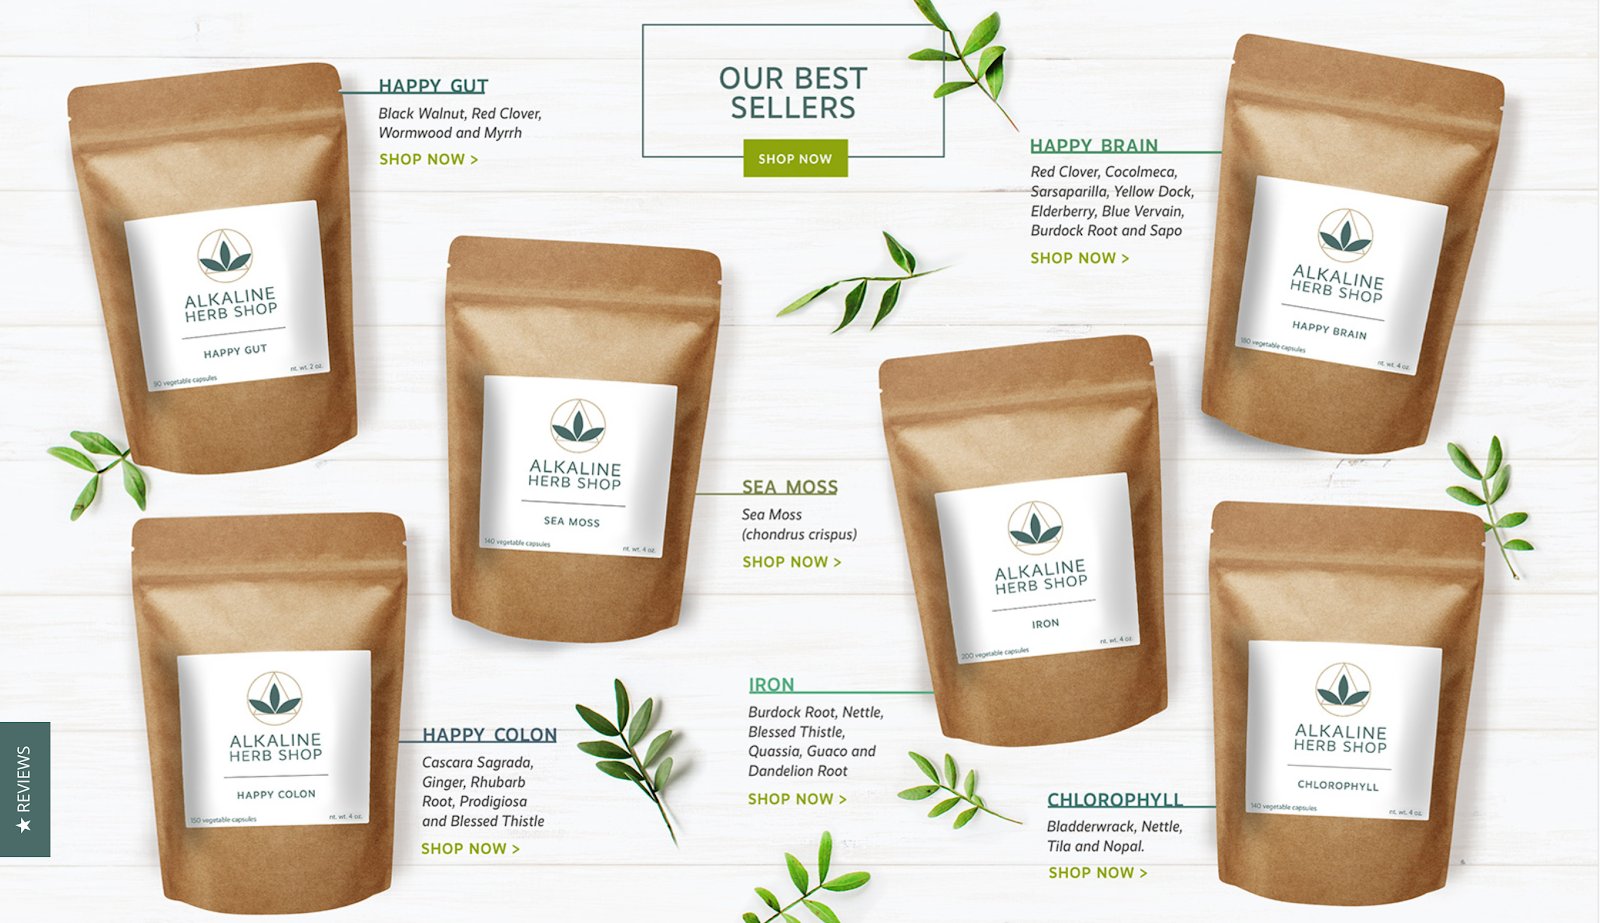 Alkaline Herb Shop supplement brand clean website design featuring packaging of best-selling products.